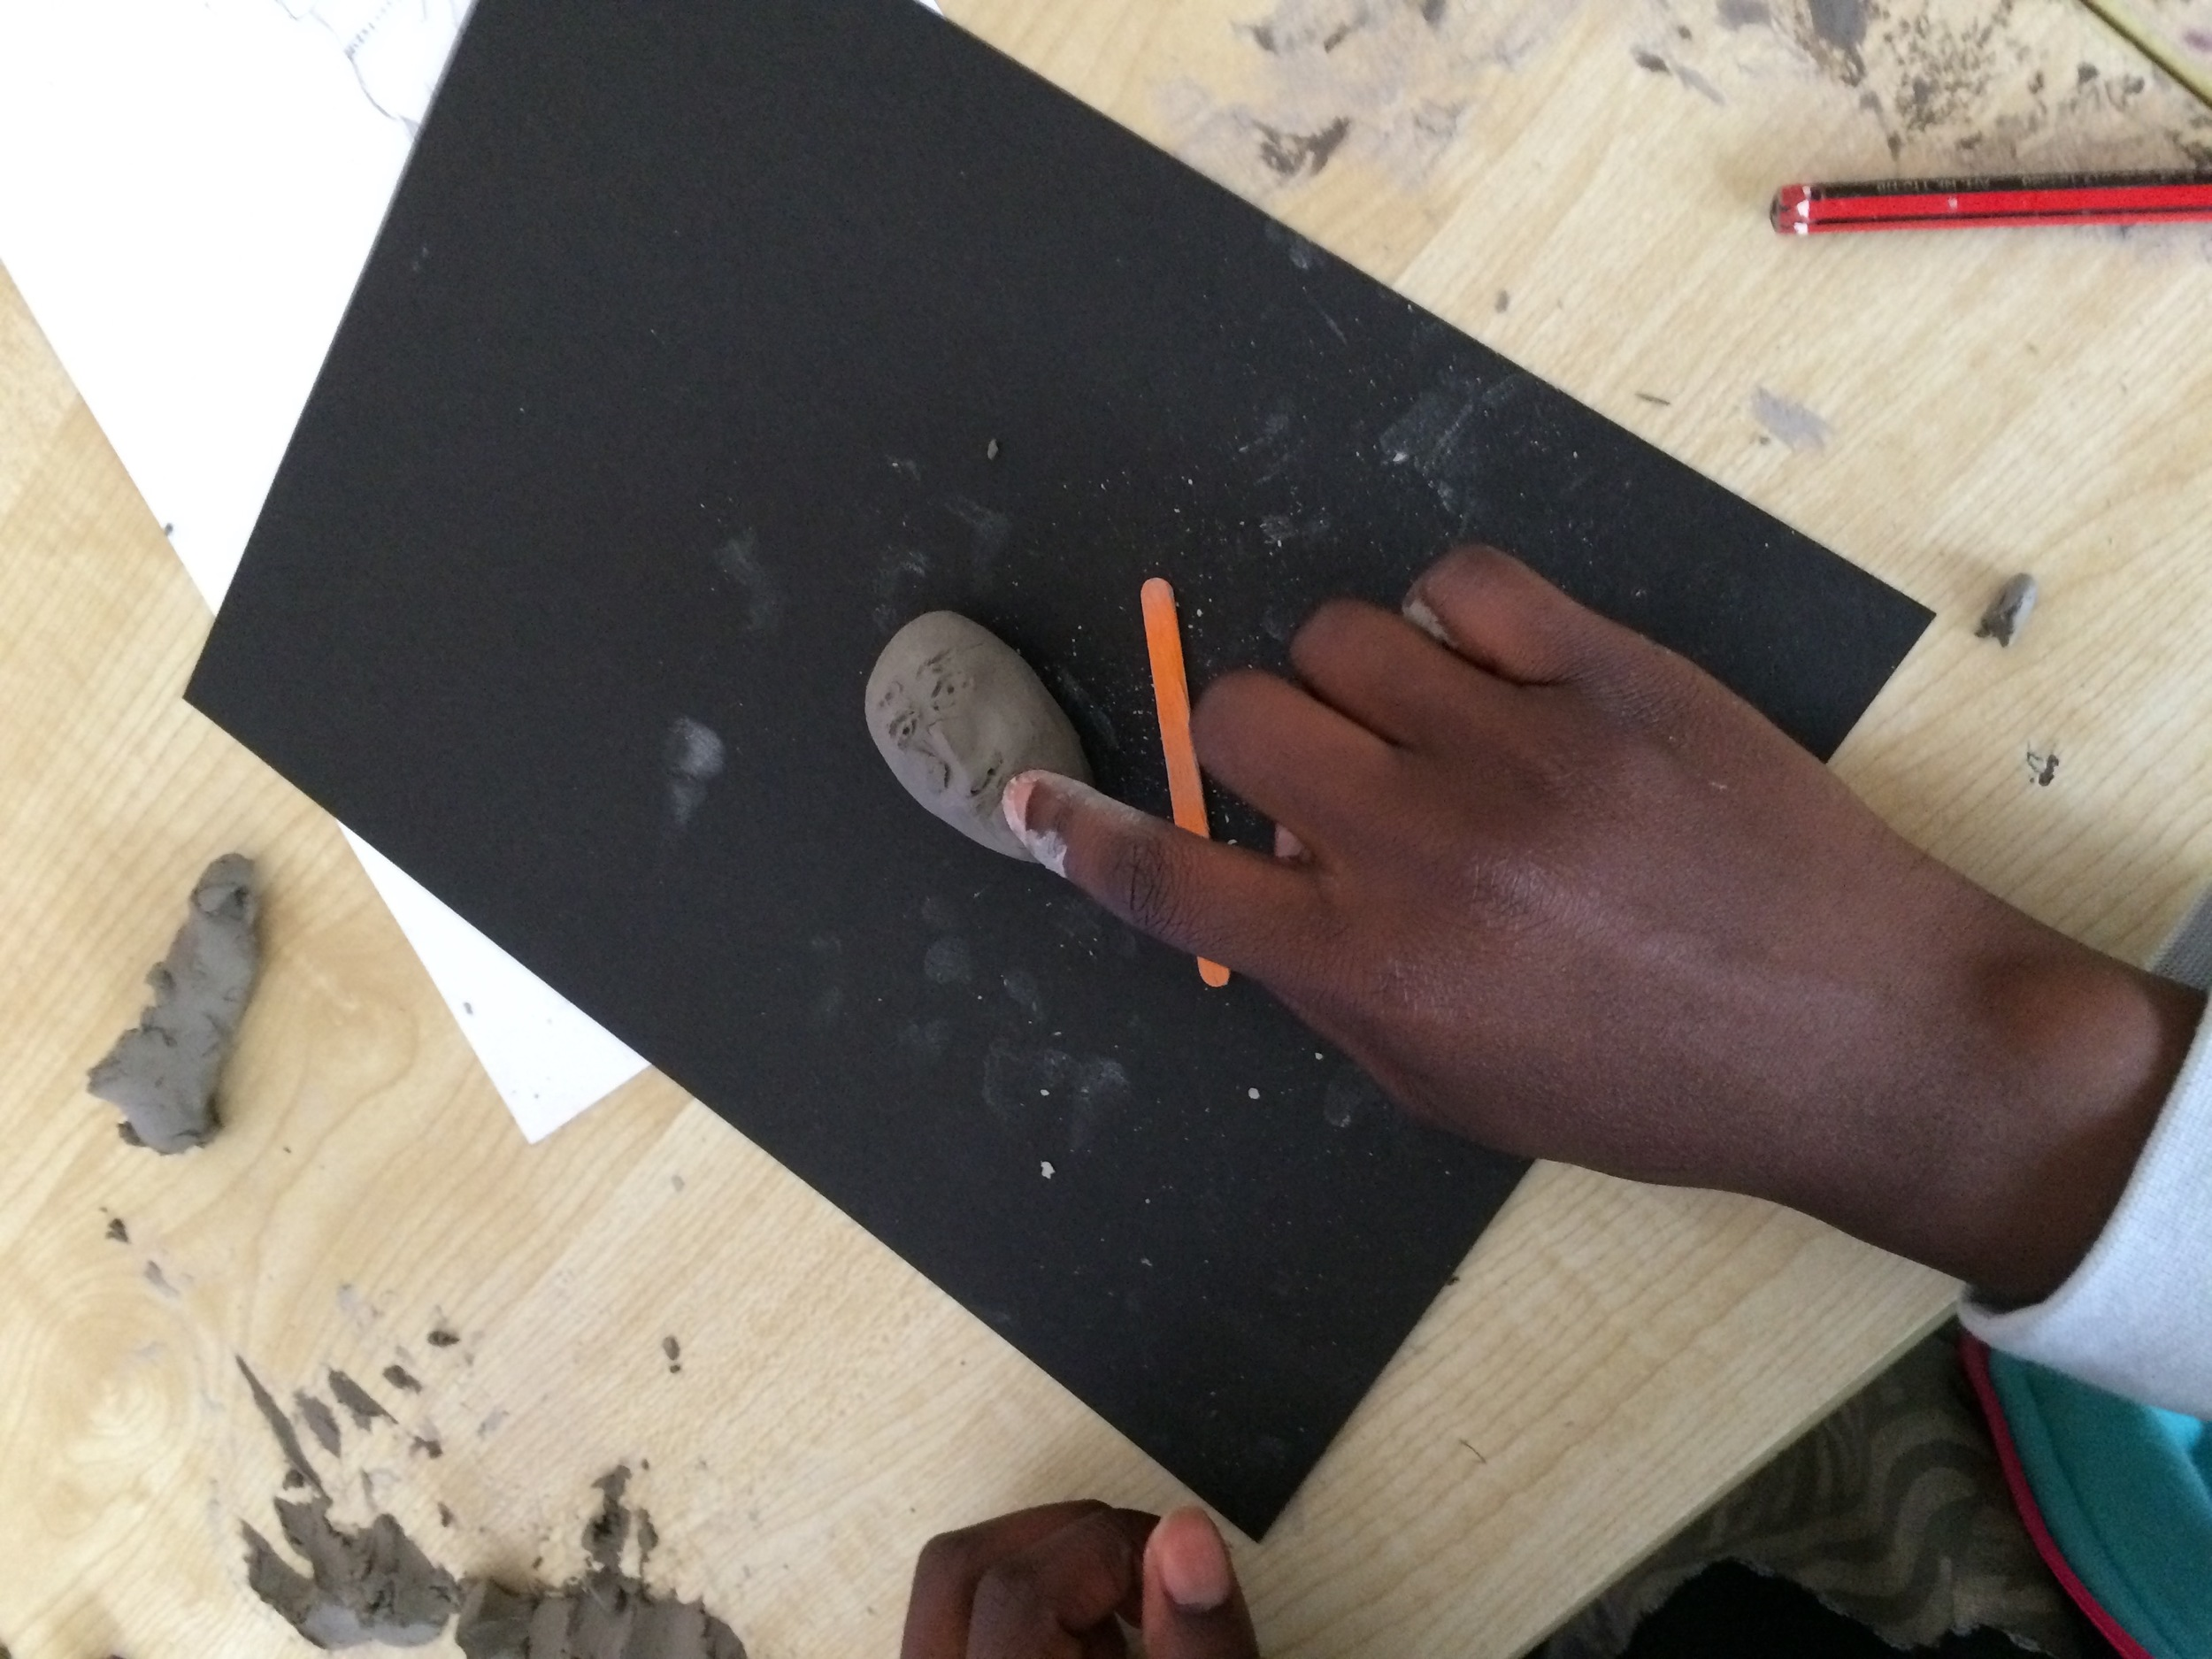 This image is of the early stages of a piece of sculpture representing the school principal Marianne.